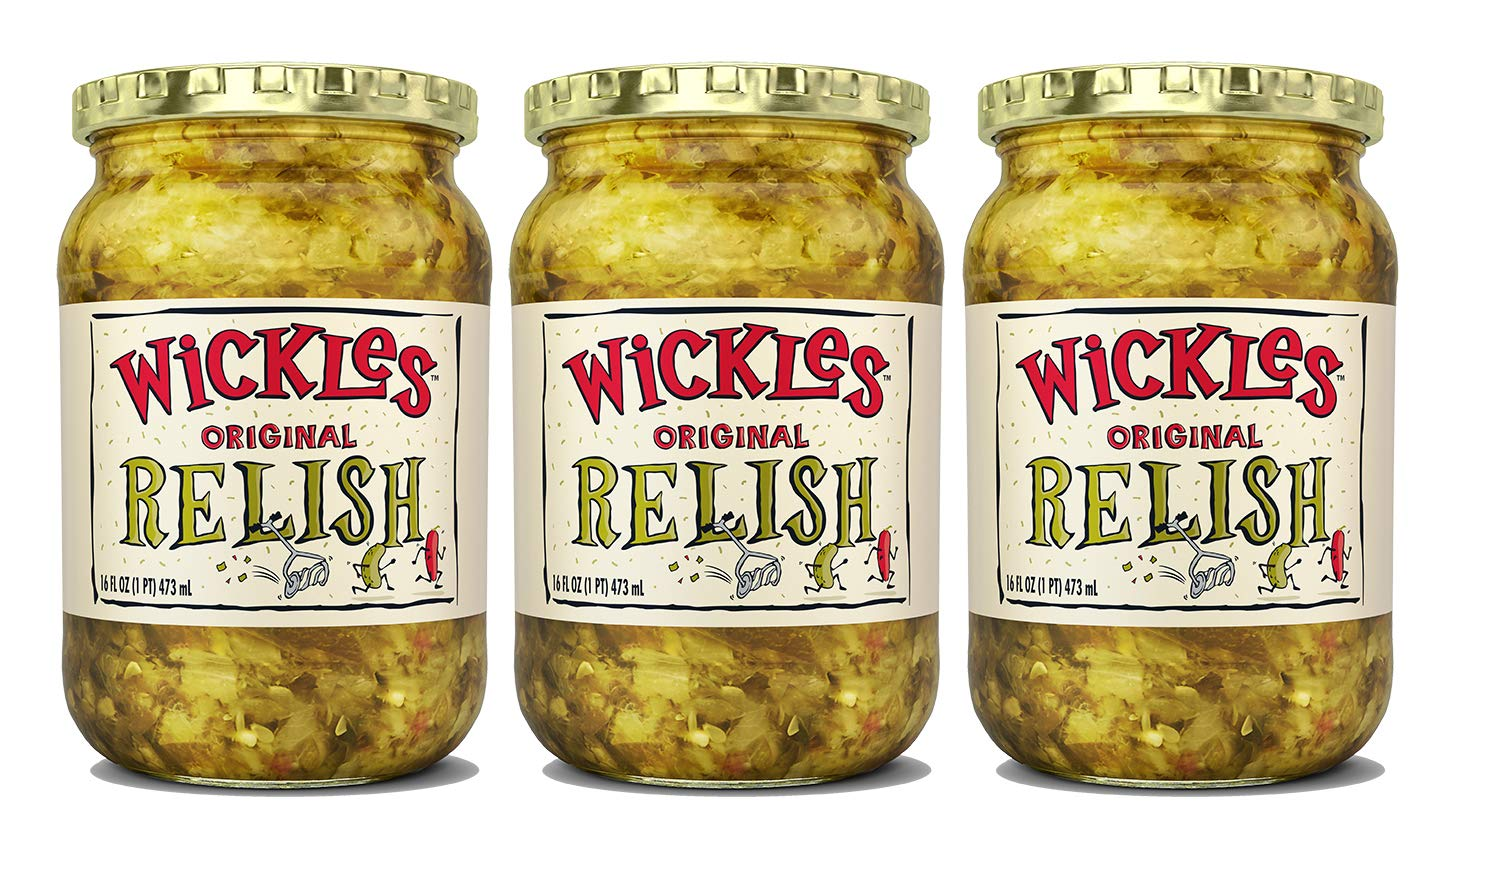 Wickles Original Relish 16 Fl Max 45% OFF Pack of Same day shipping Oz 3